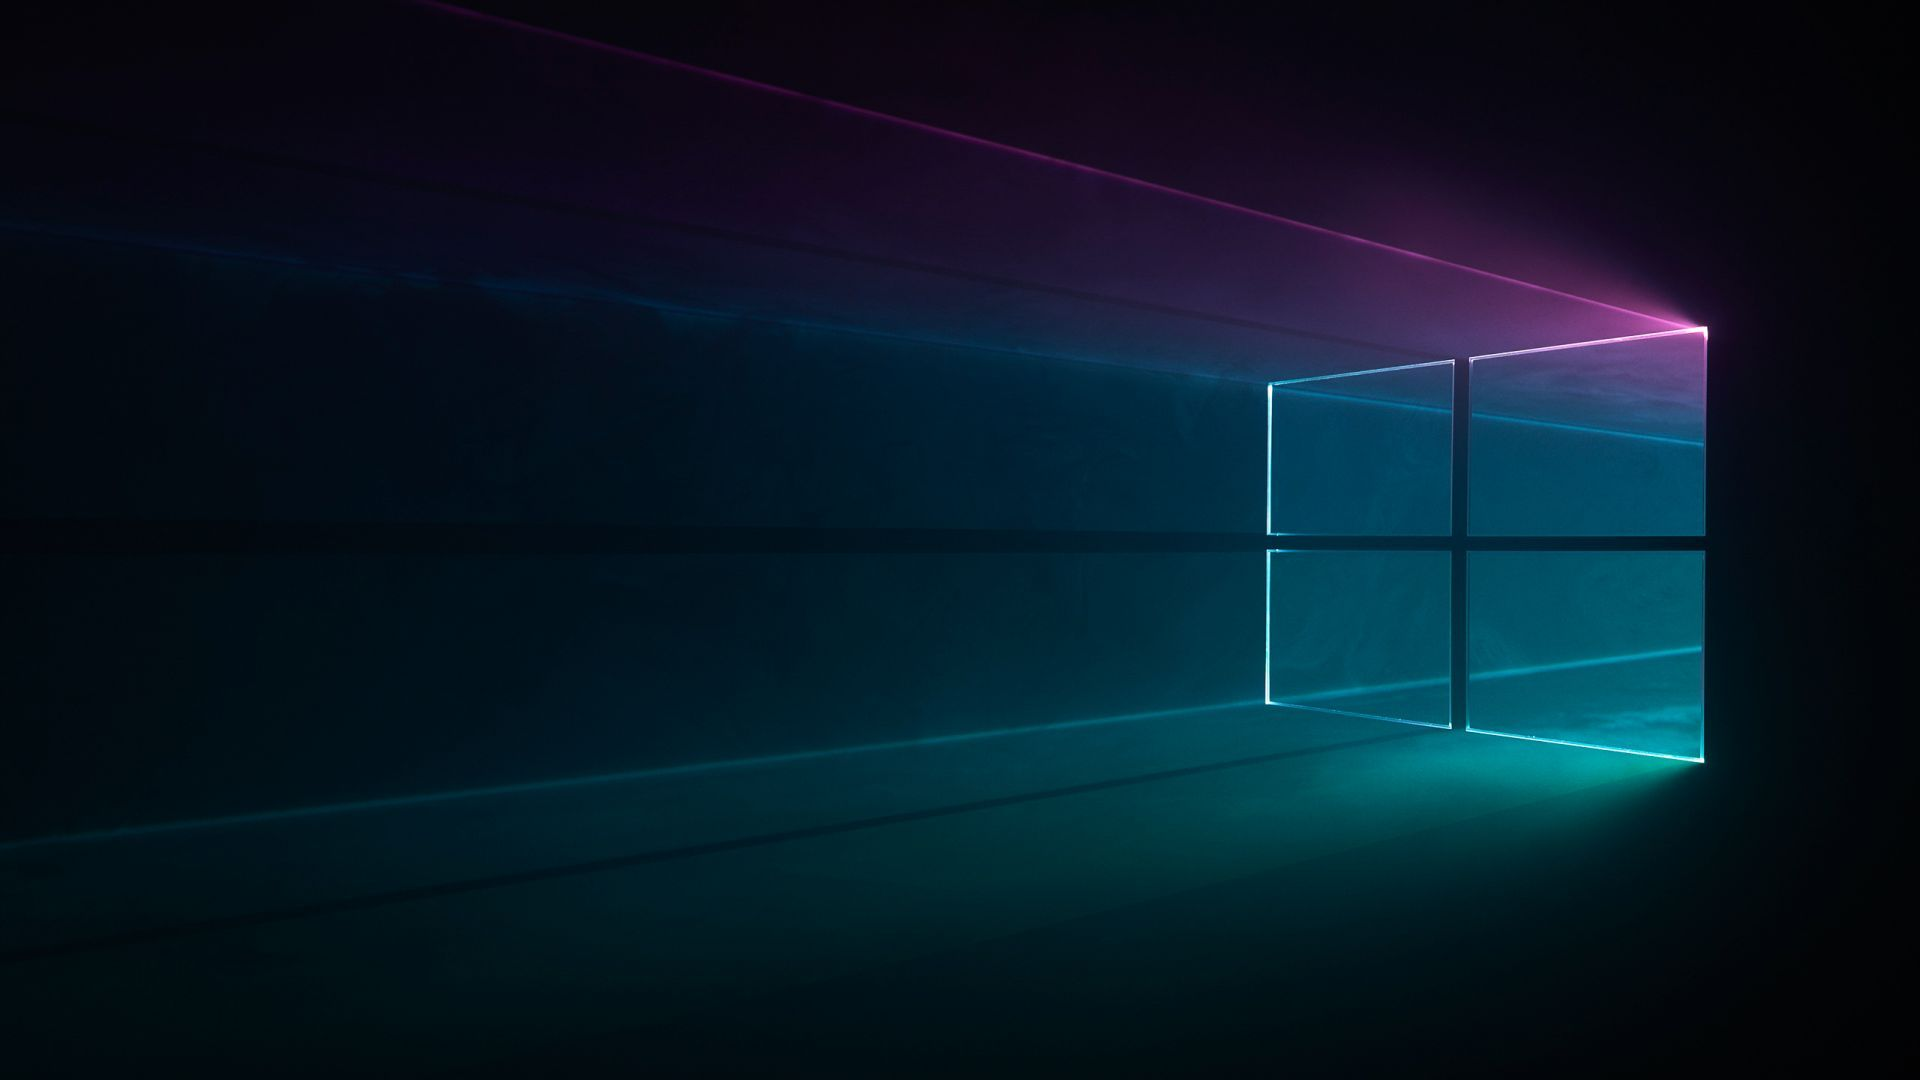 Download Wallpapers Of Windows 10 Windows Logo Multi Color Hd Technology 10955 Available In H Windows Wallpaper Wallpaper Windows 10 Microsoft Wallpaper